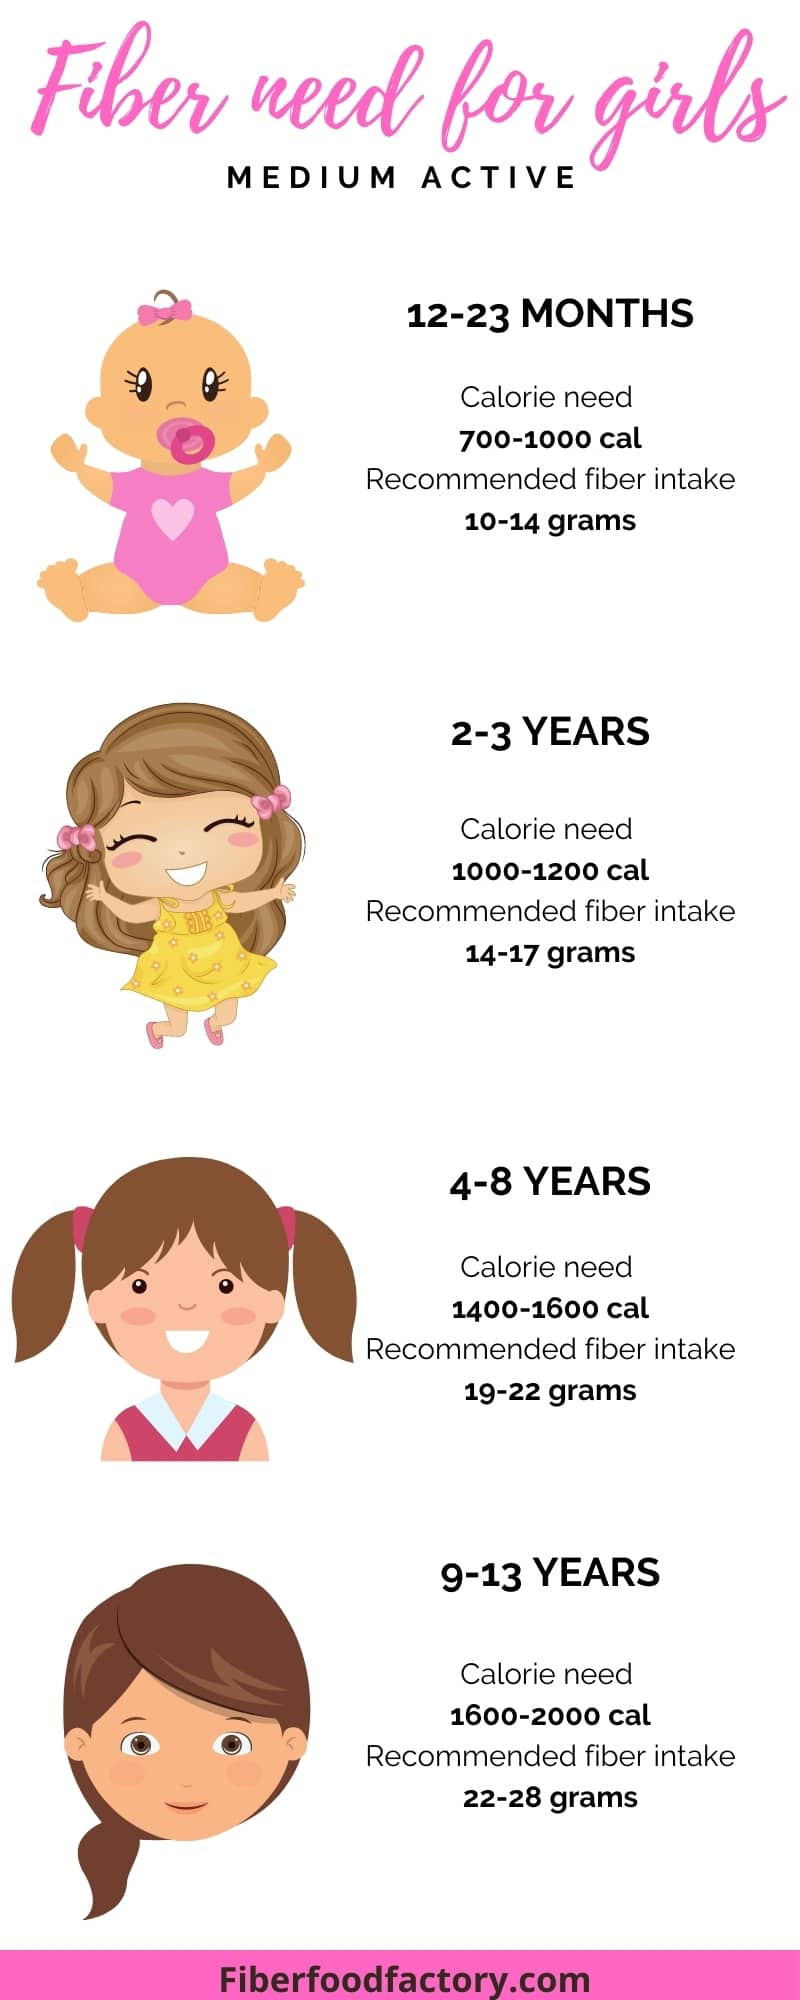 infographic on fiber need for girls in different ages.